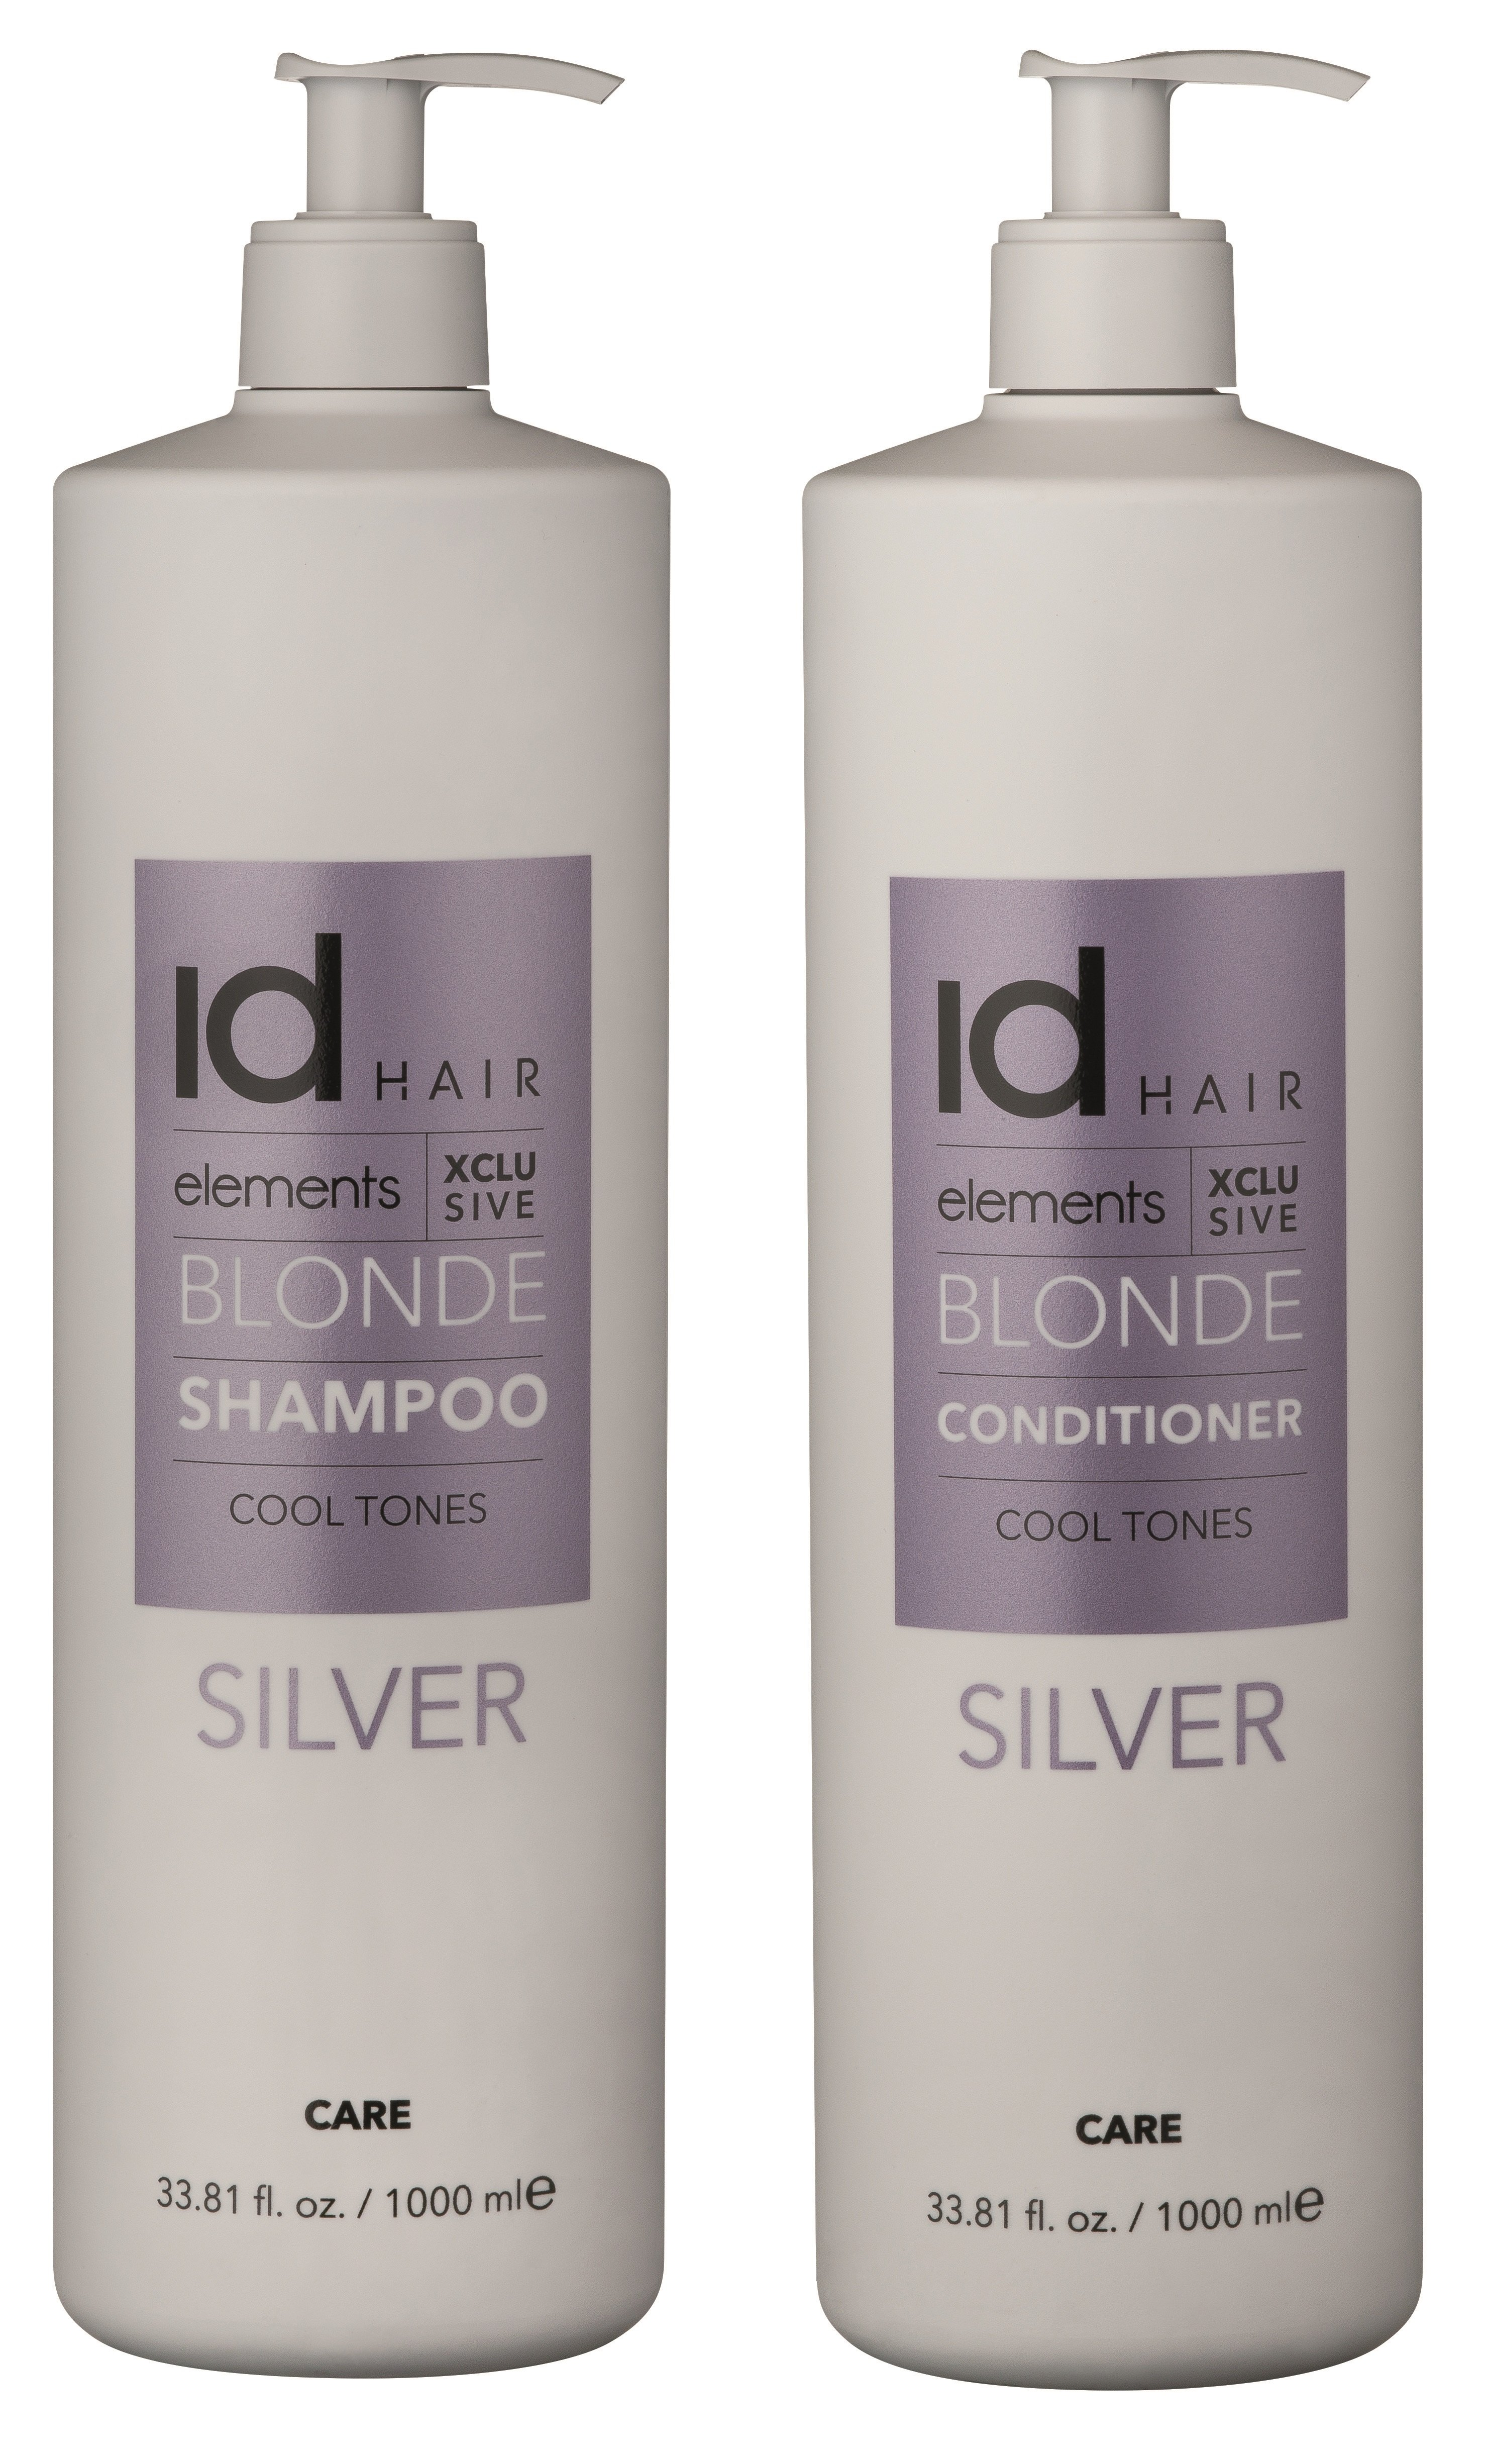 IdHAIR - Elements Xclusive Silver Shampoo 1000 ml + Conditioner 1000 ml